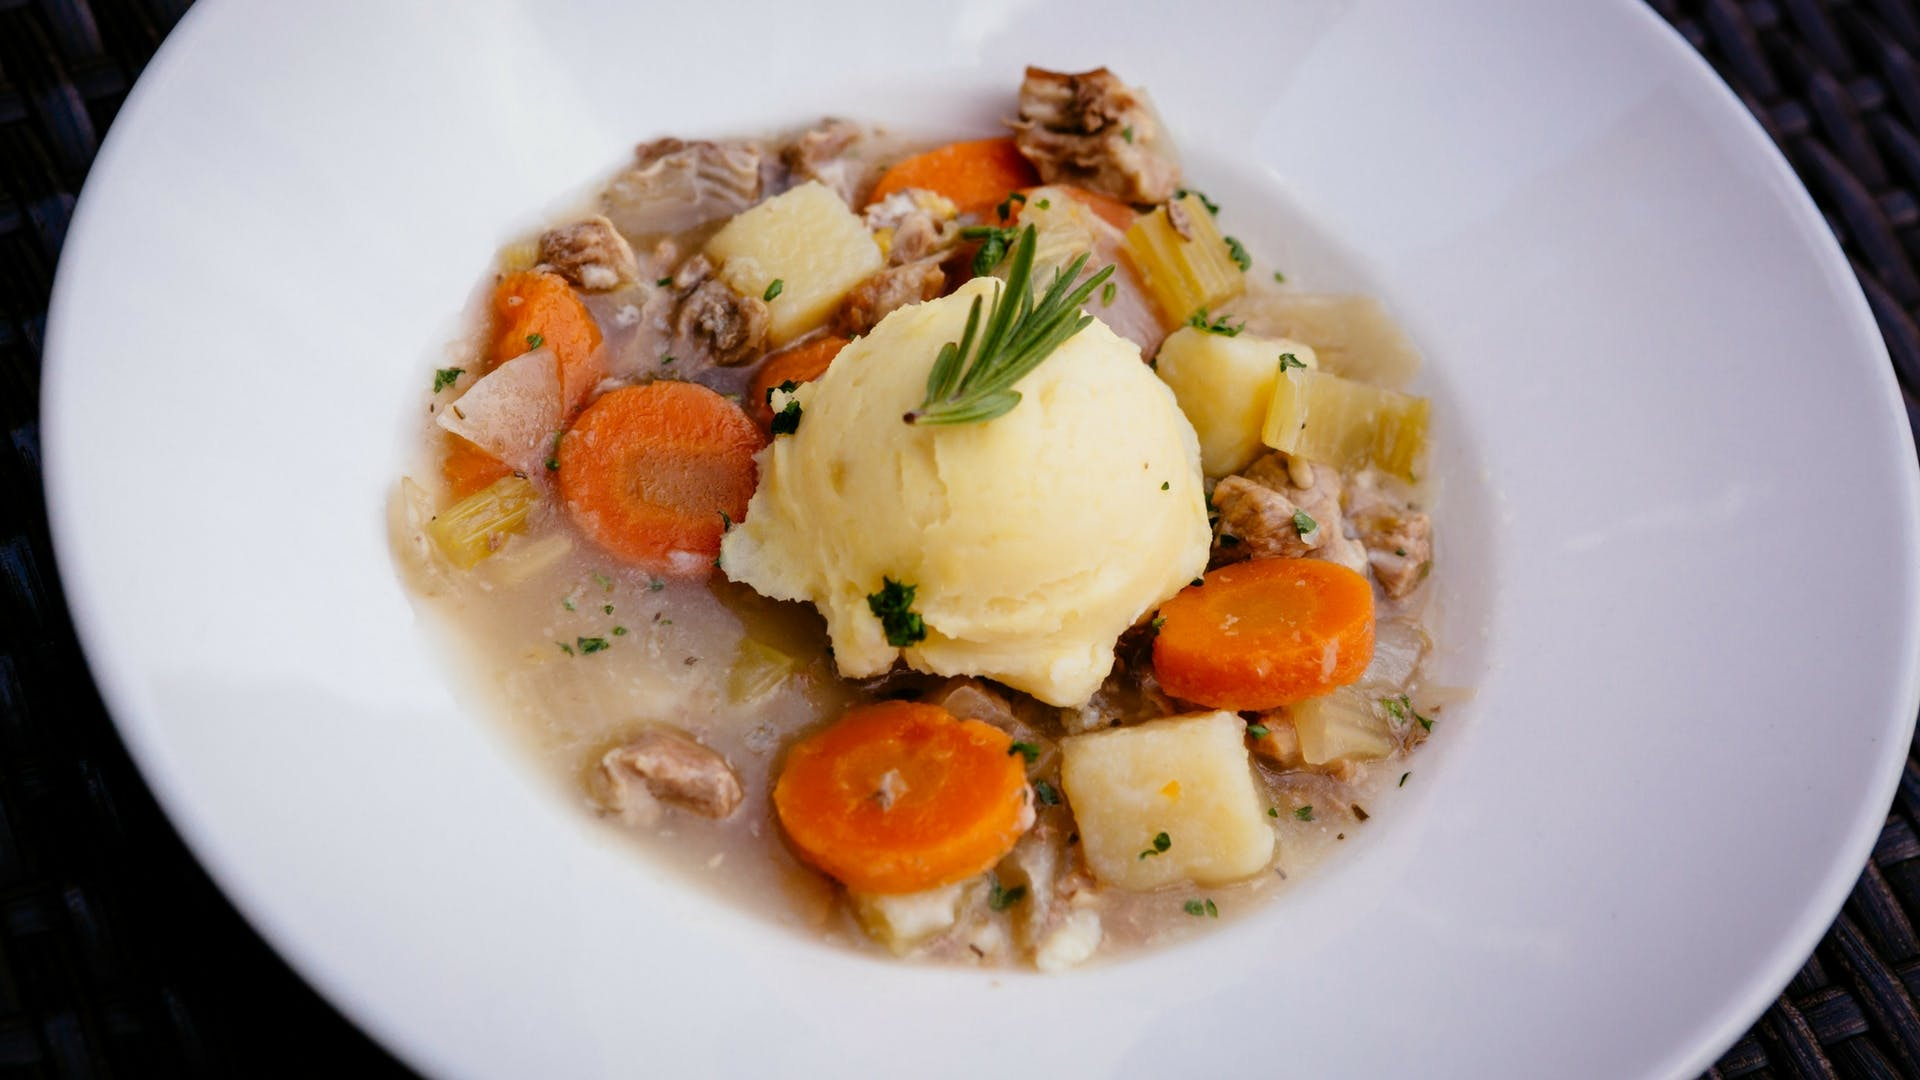 Roscommon lamb stew at Gleesons Restaurant & Rooms, Roscommon